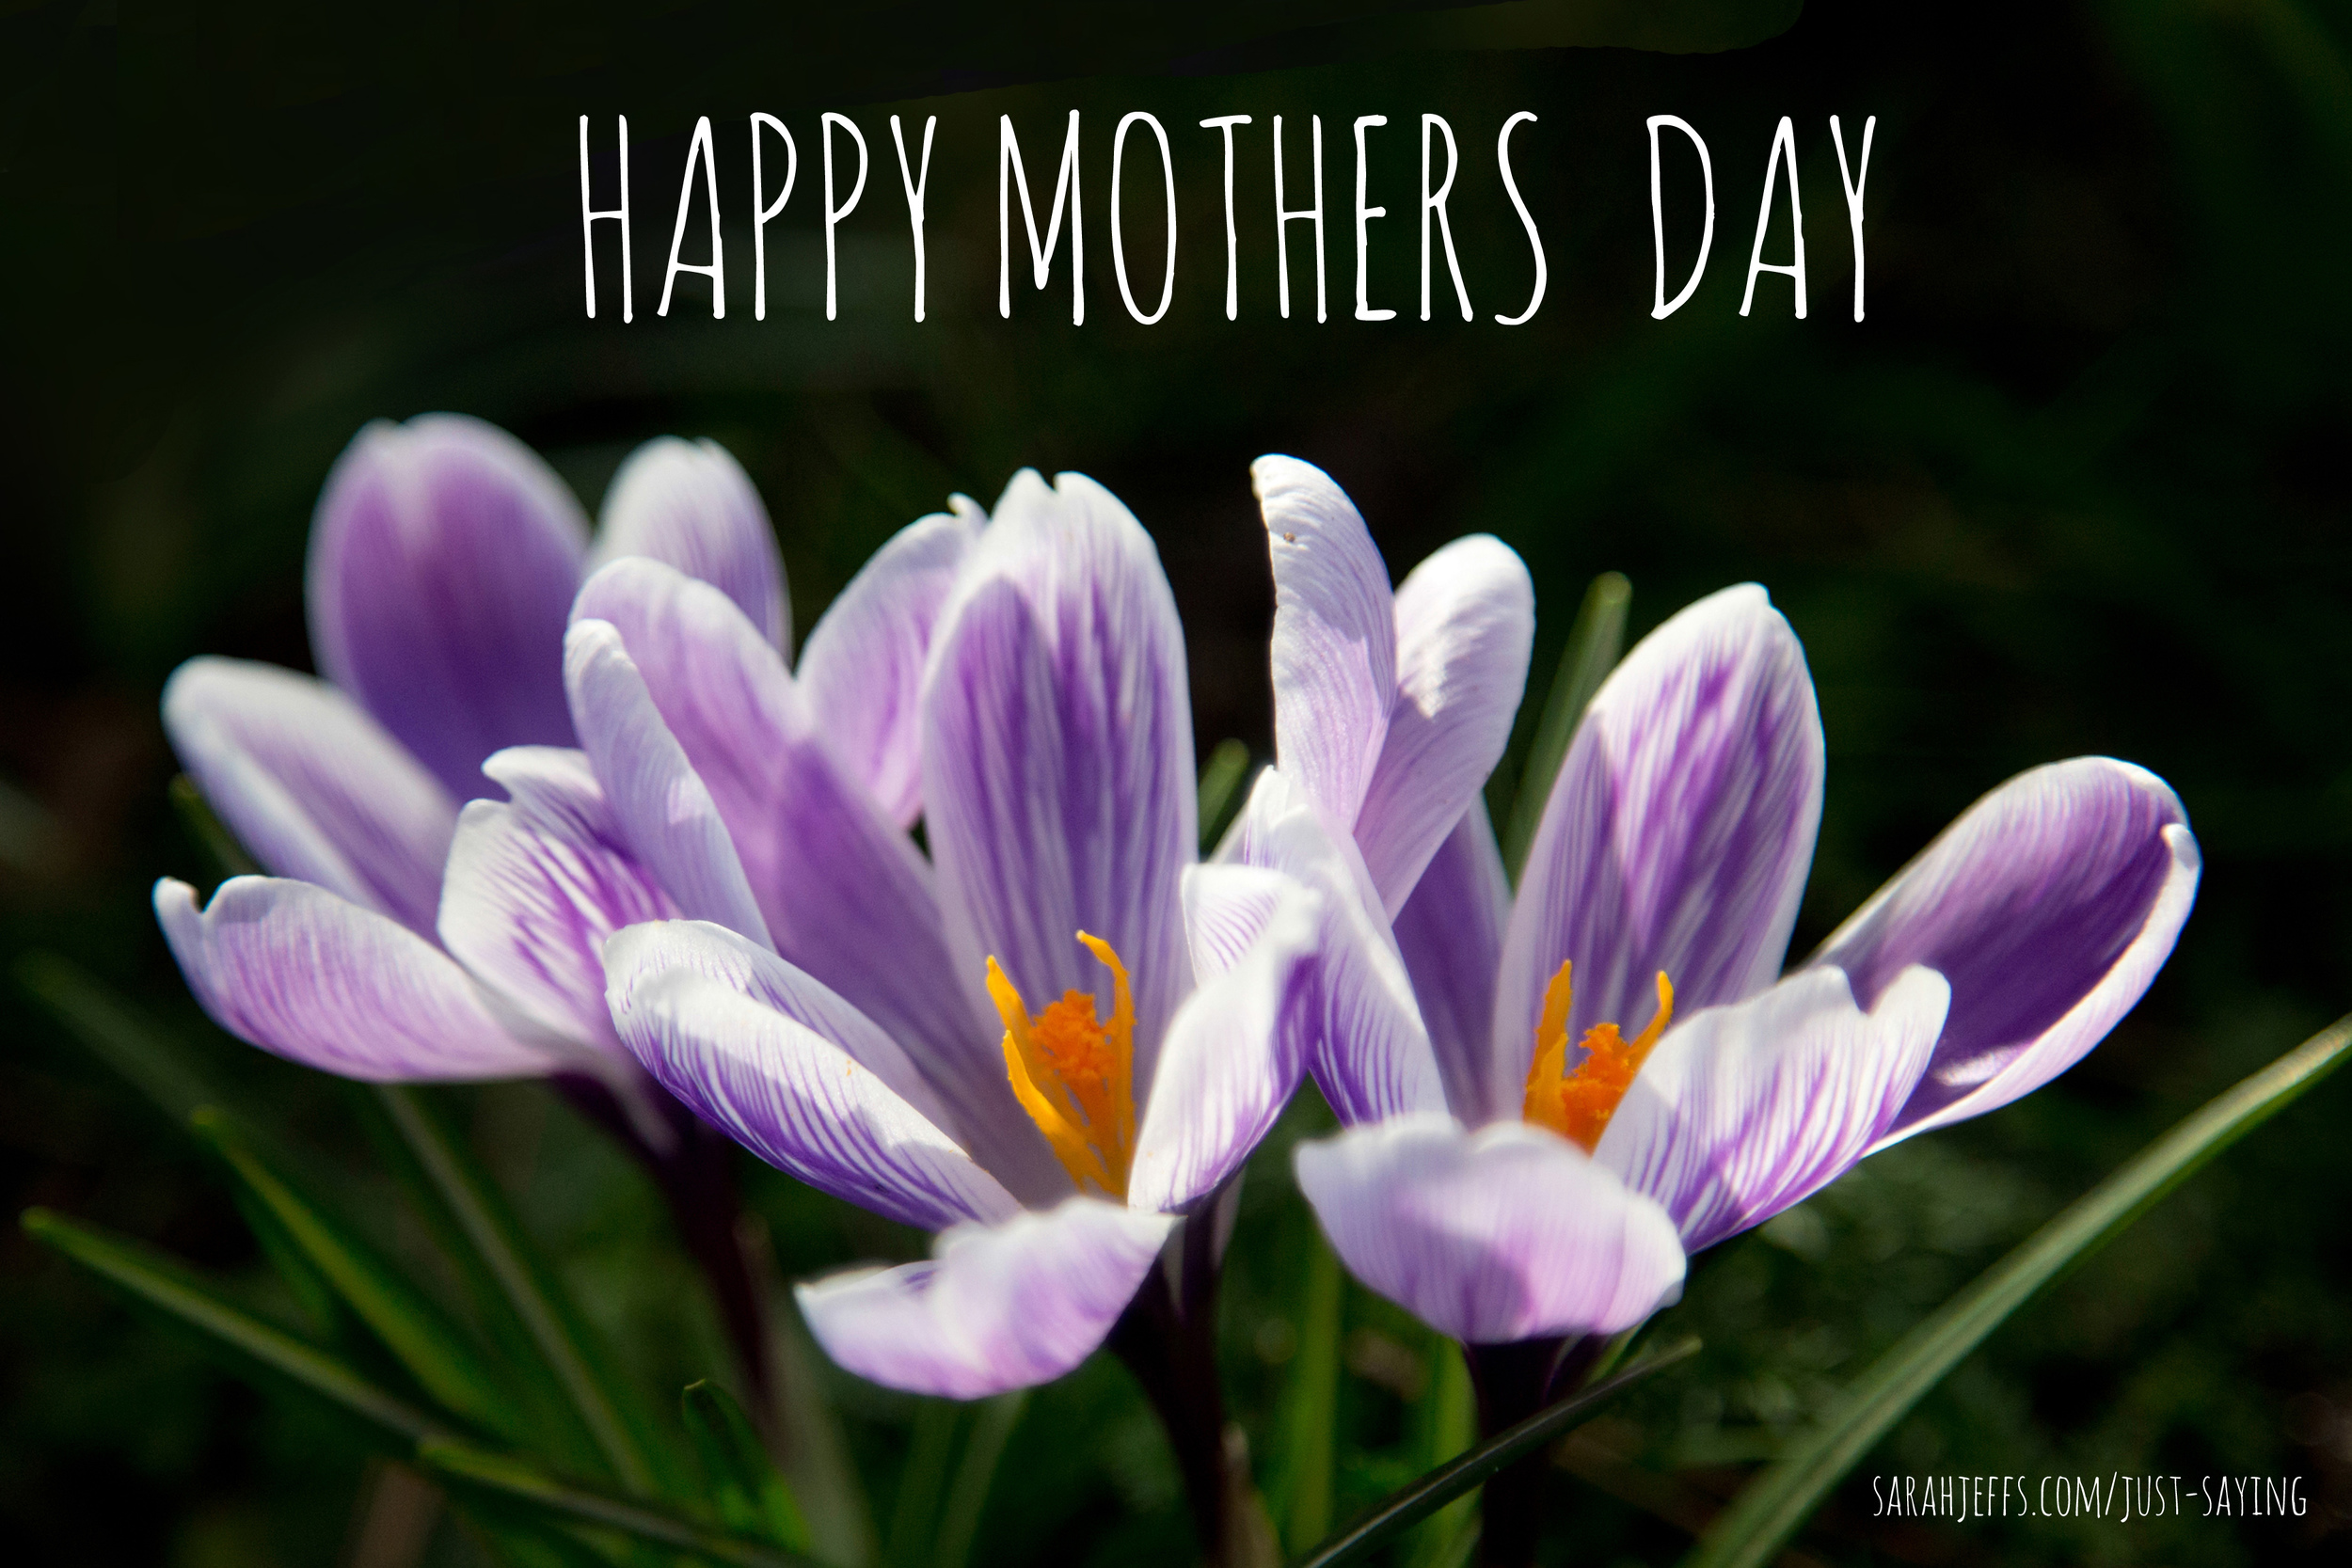 HAPPY-MOTHERS-DAY-3.jpg